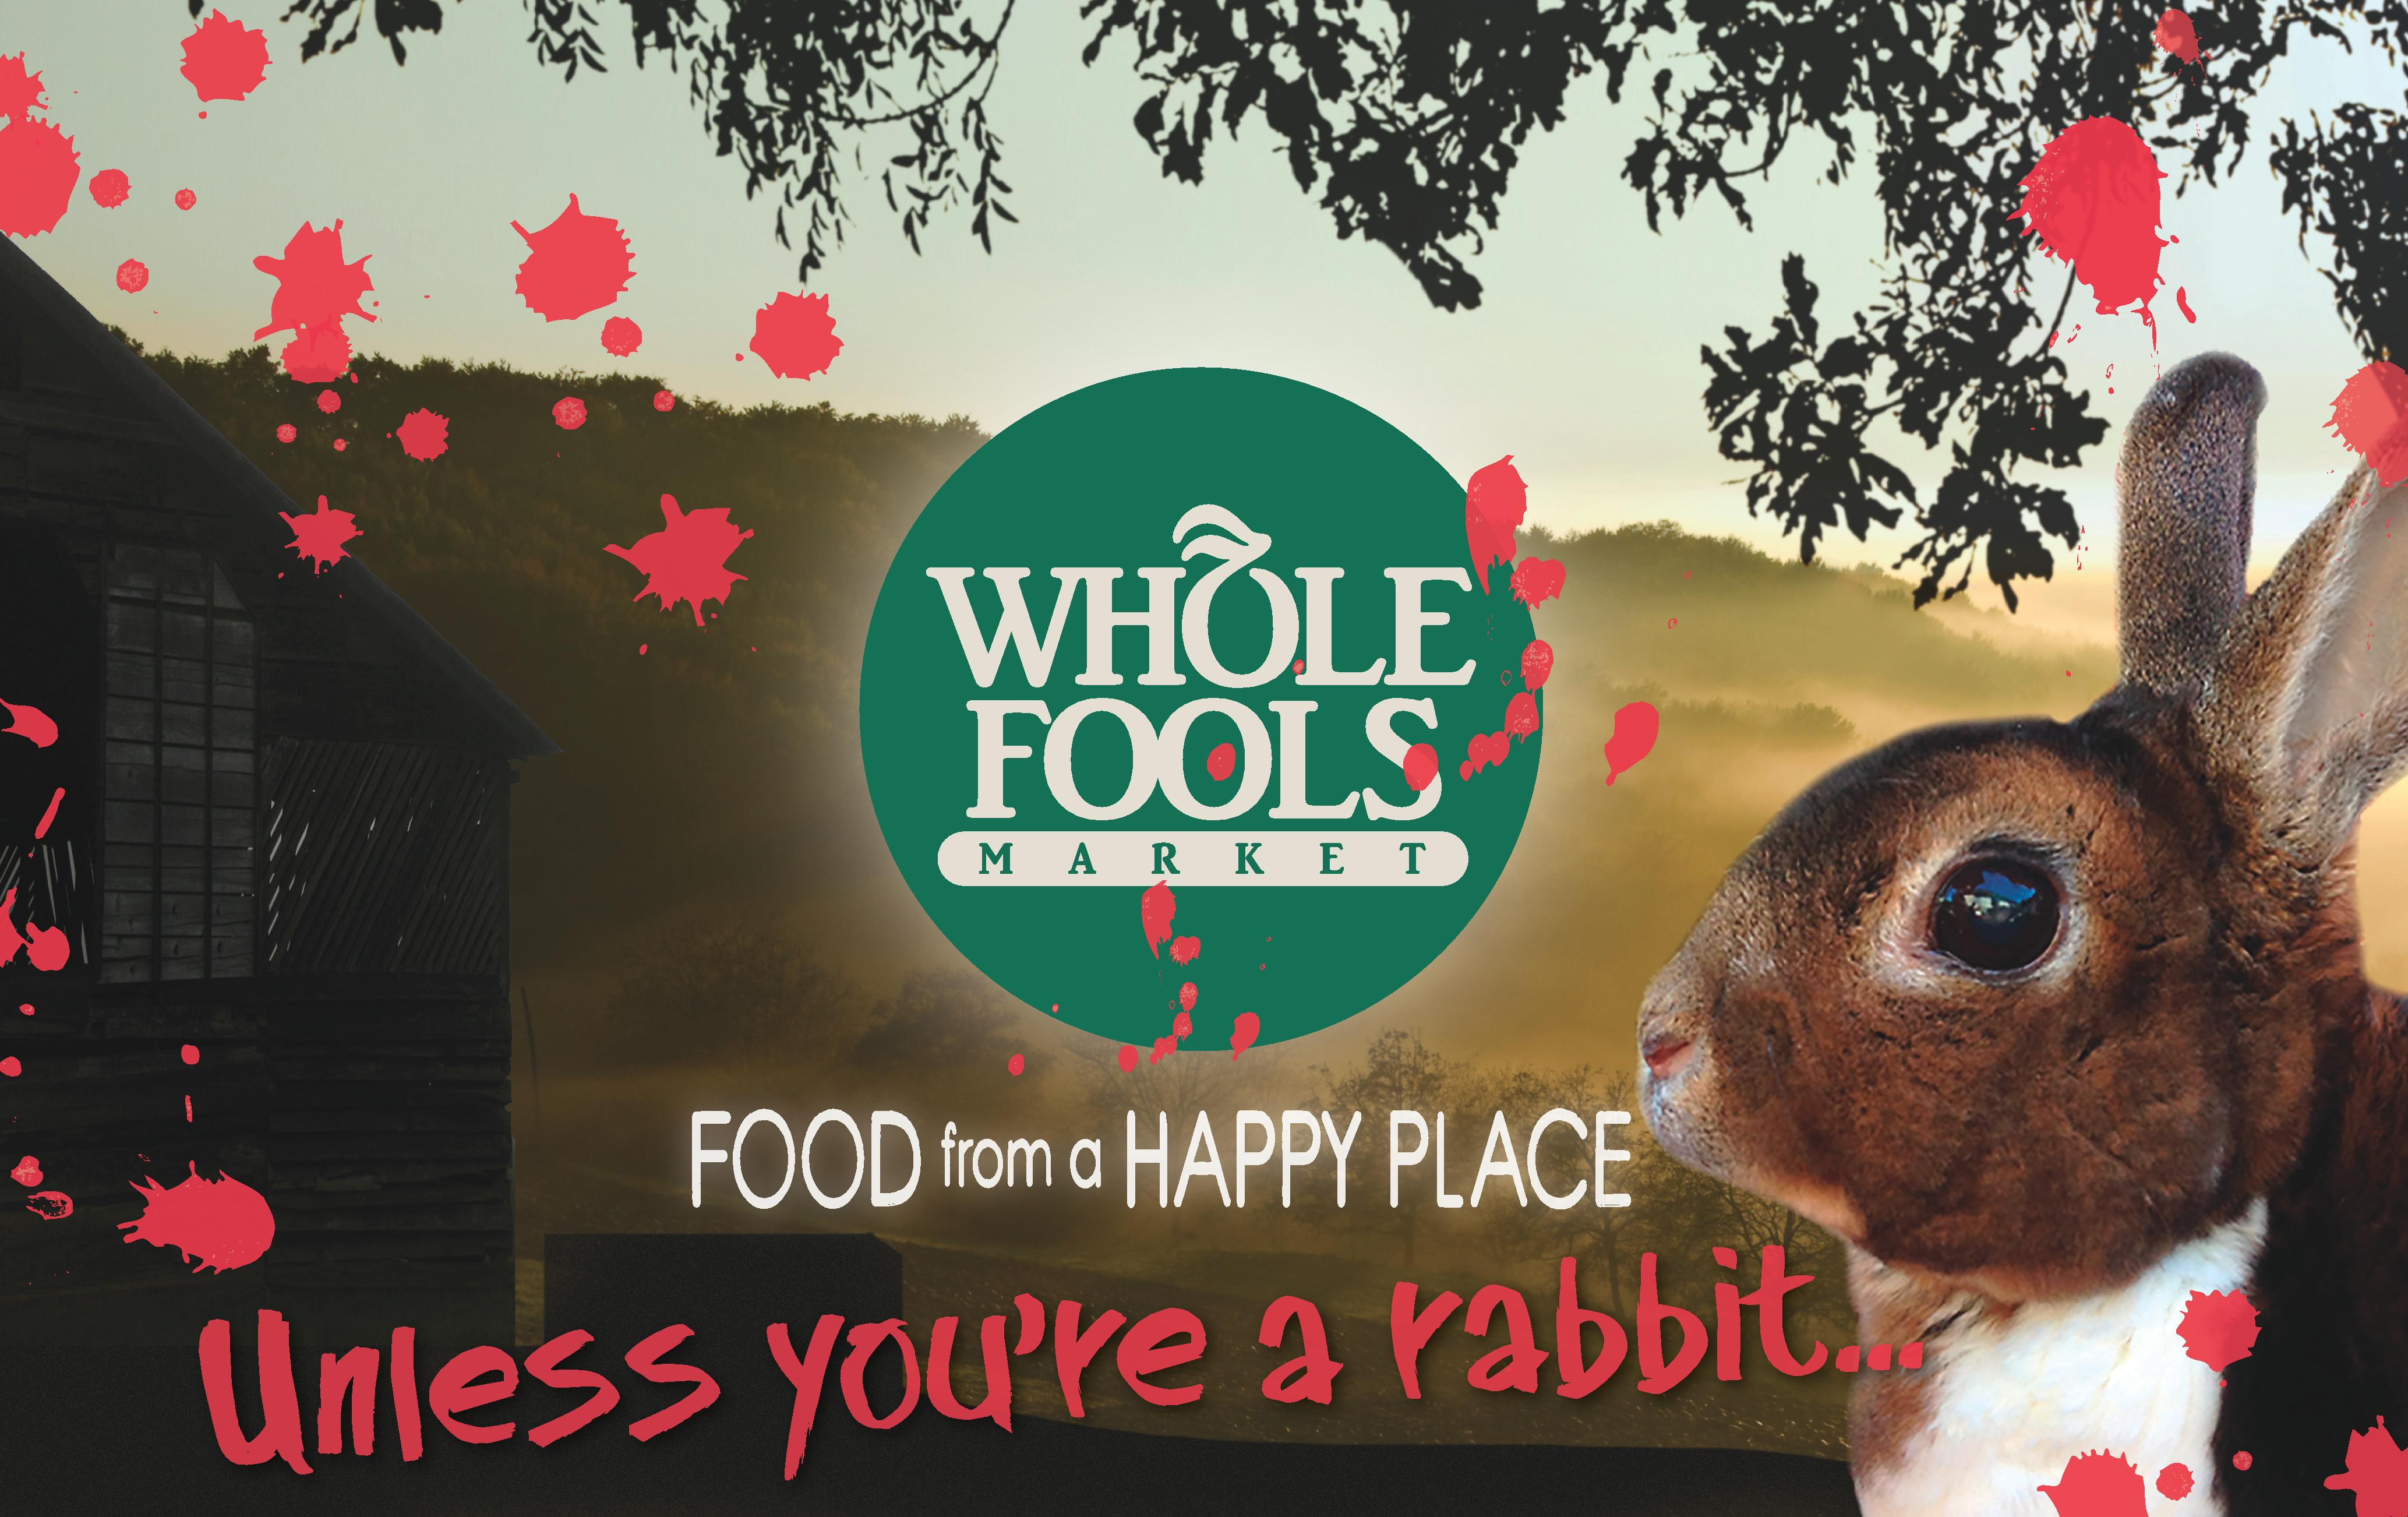 Day of Action Focused on Whole Foods: August 17